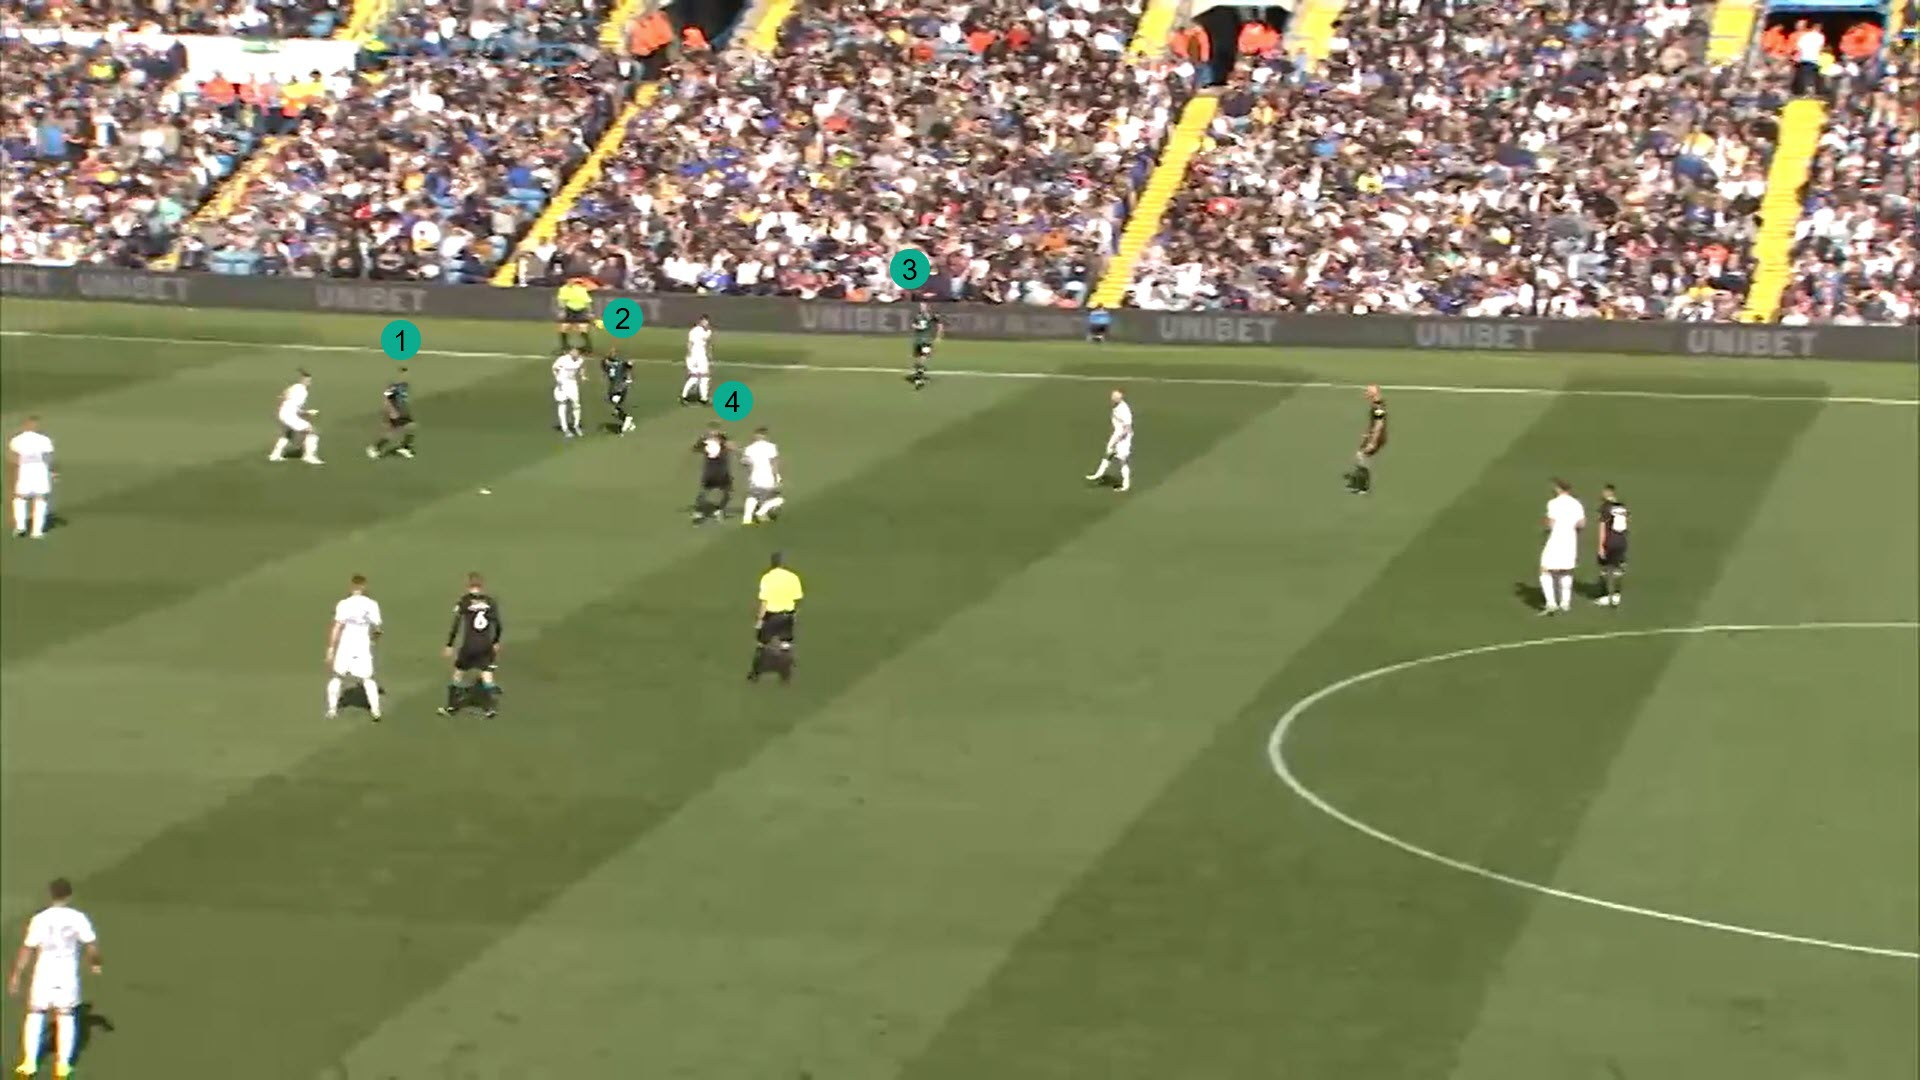 Steve Cooper at Swansea City 2019/20 - tactical analysis tactics